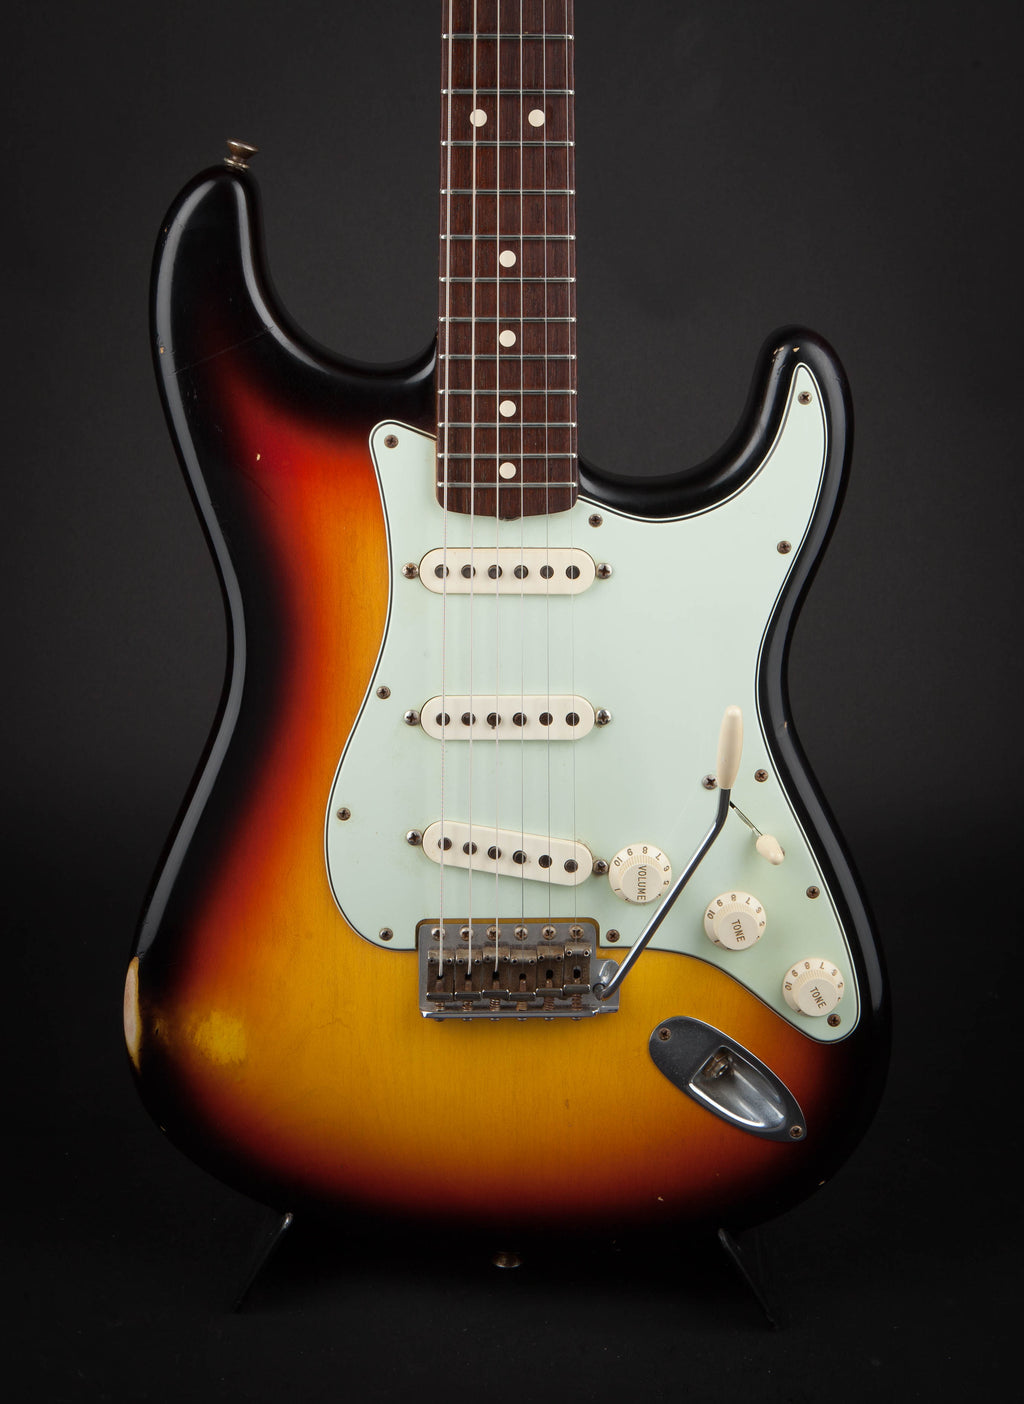 Fender Custom Shop: 63 Strat Relic 3 Tone Sunburst #R53571